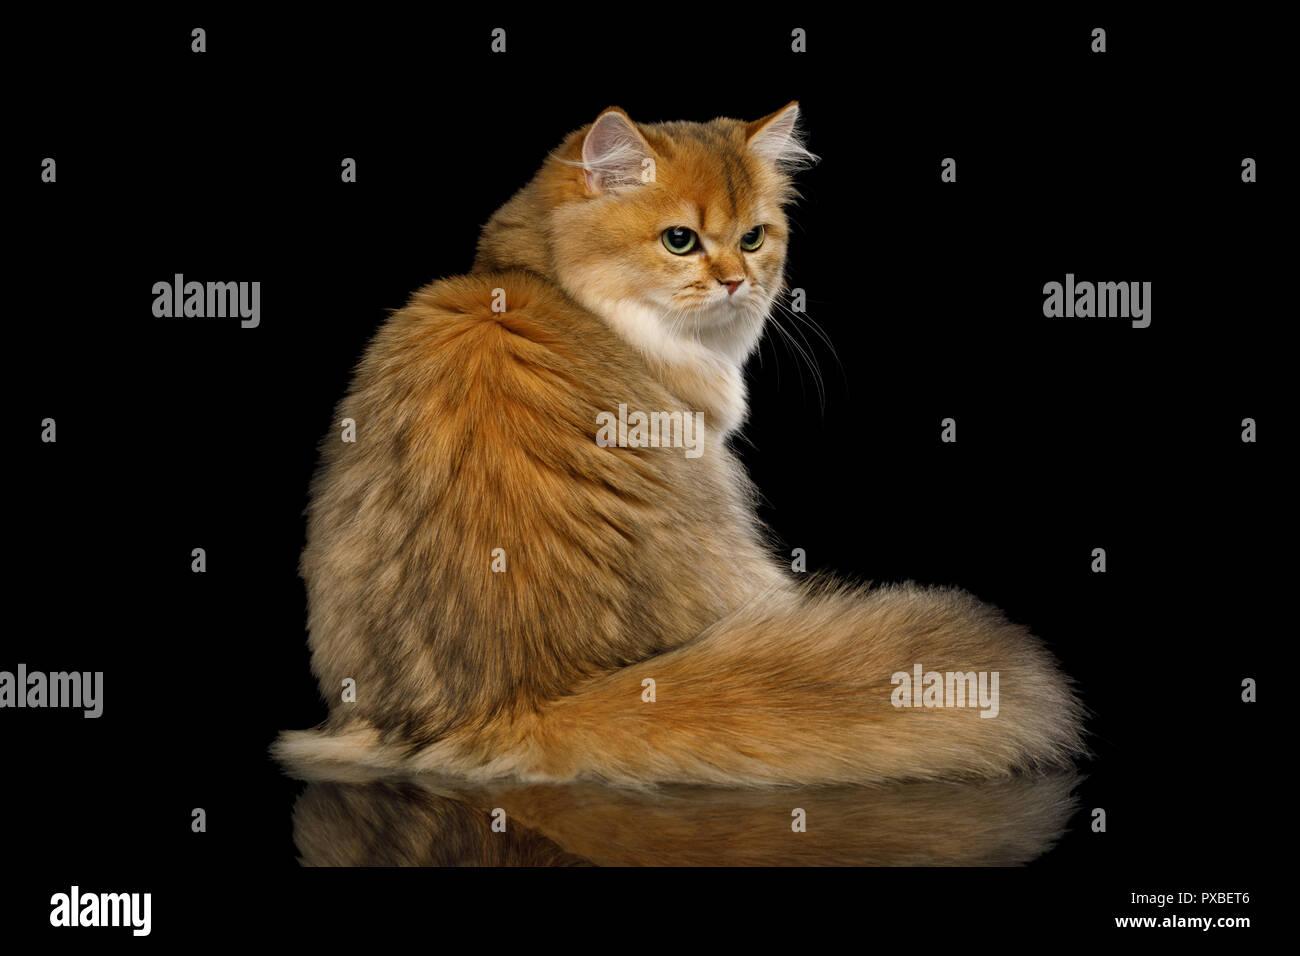 British Cat Red color with Furry tail Sitting and Looks offended on Isolated Black Background - Stock Image